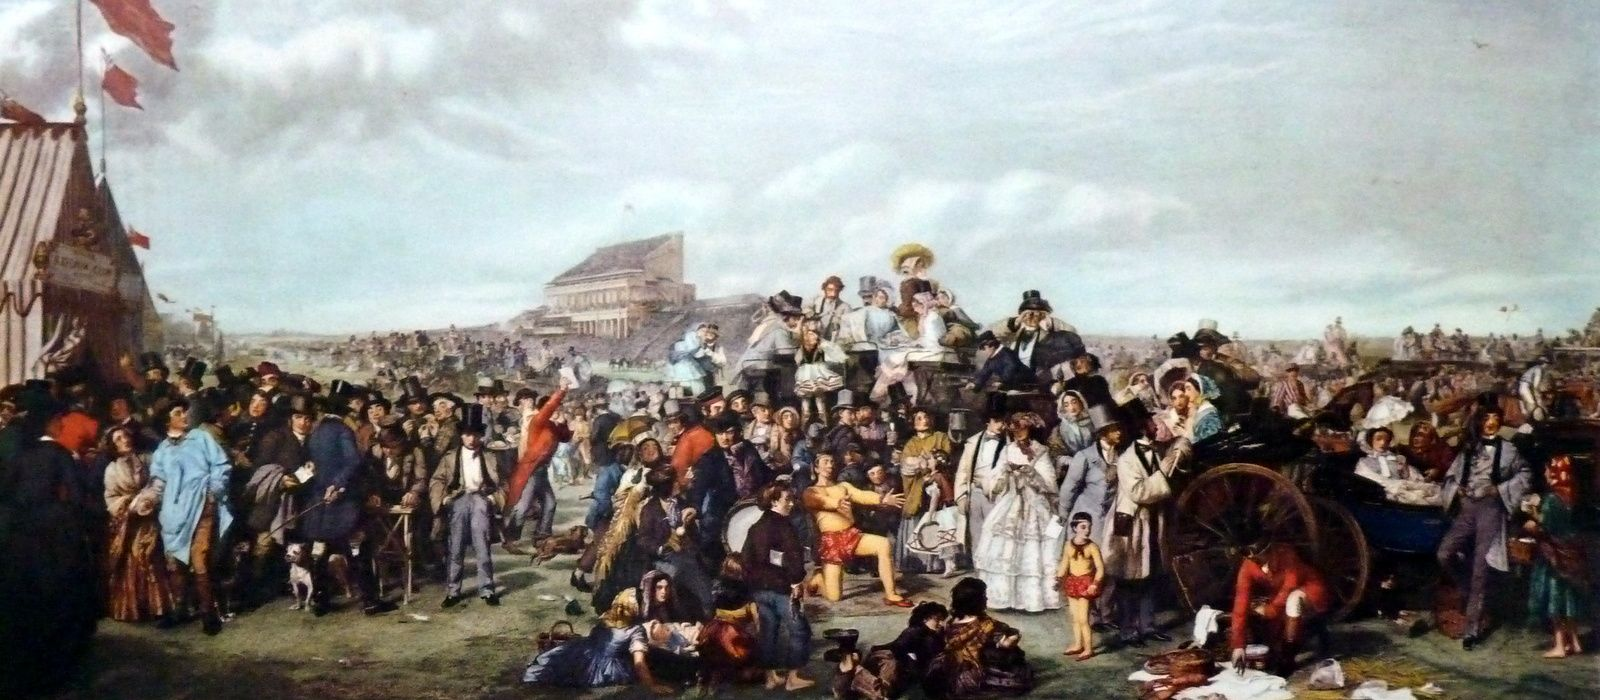 The derby day par Frith 1859